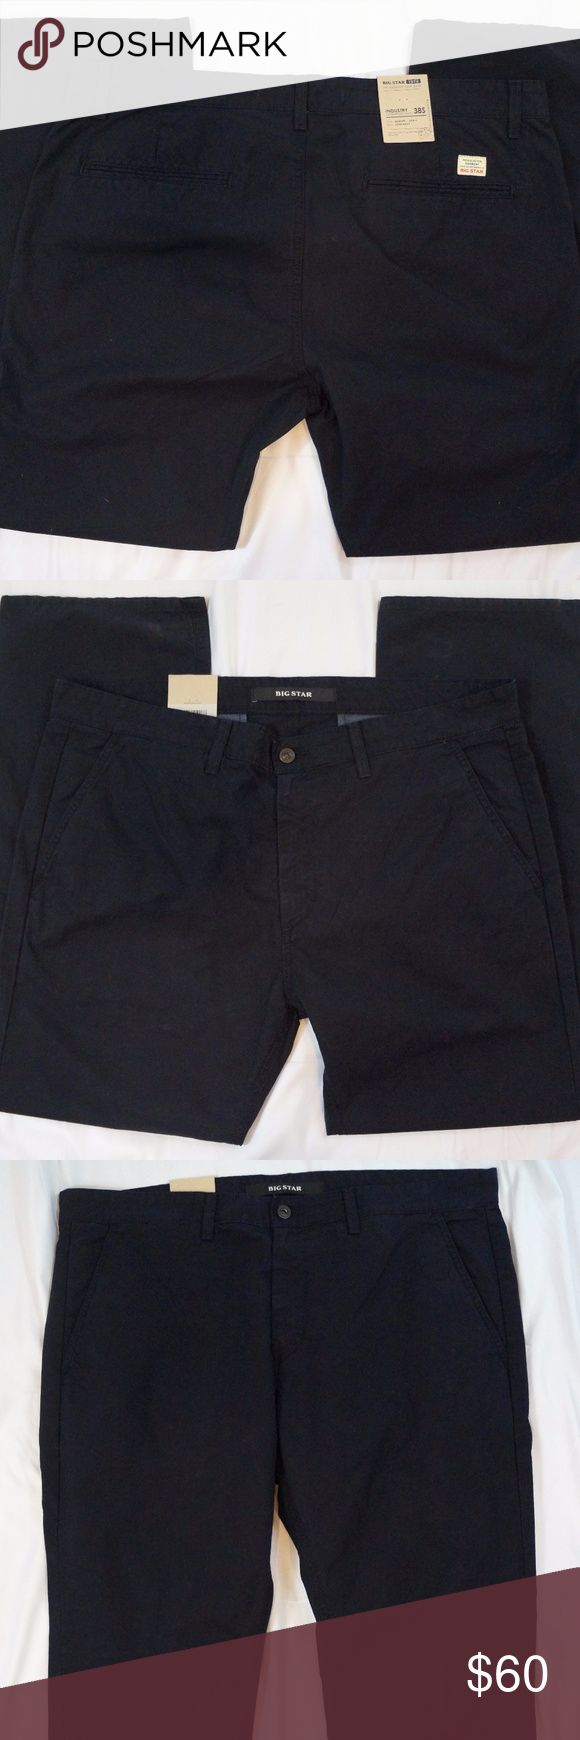 "Big Star Industry Straight Leg Chino Size 38 X 30 Big Star Mens Industry Straight Leg Chino Size 38 X 30 New Dark Navy Blue Pants  Hand Measurements: Waist: 38"" Inseam: 30"" Rise: 11.5"" Thigh: 27"" Leg Opening: 9.5""  #1282 Big Star Pants Chinos & Khakis"